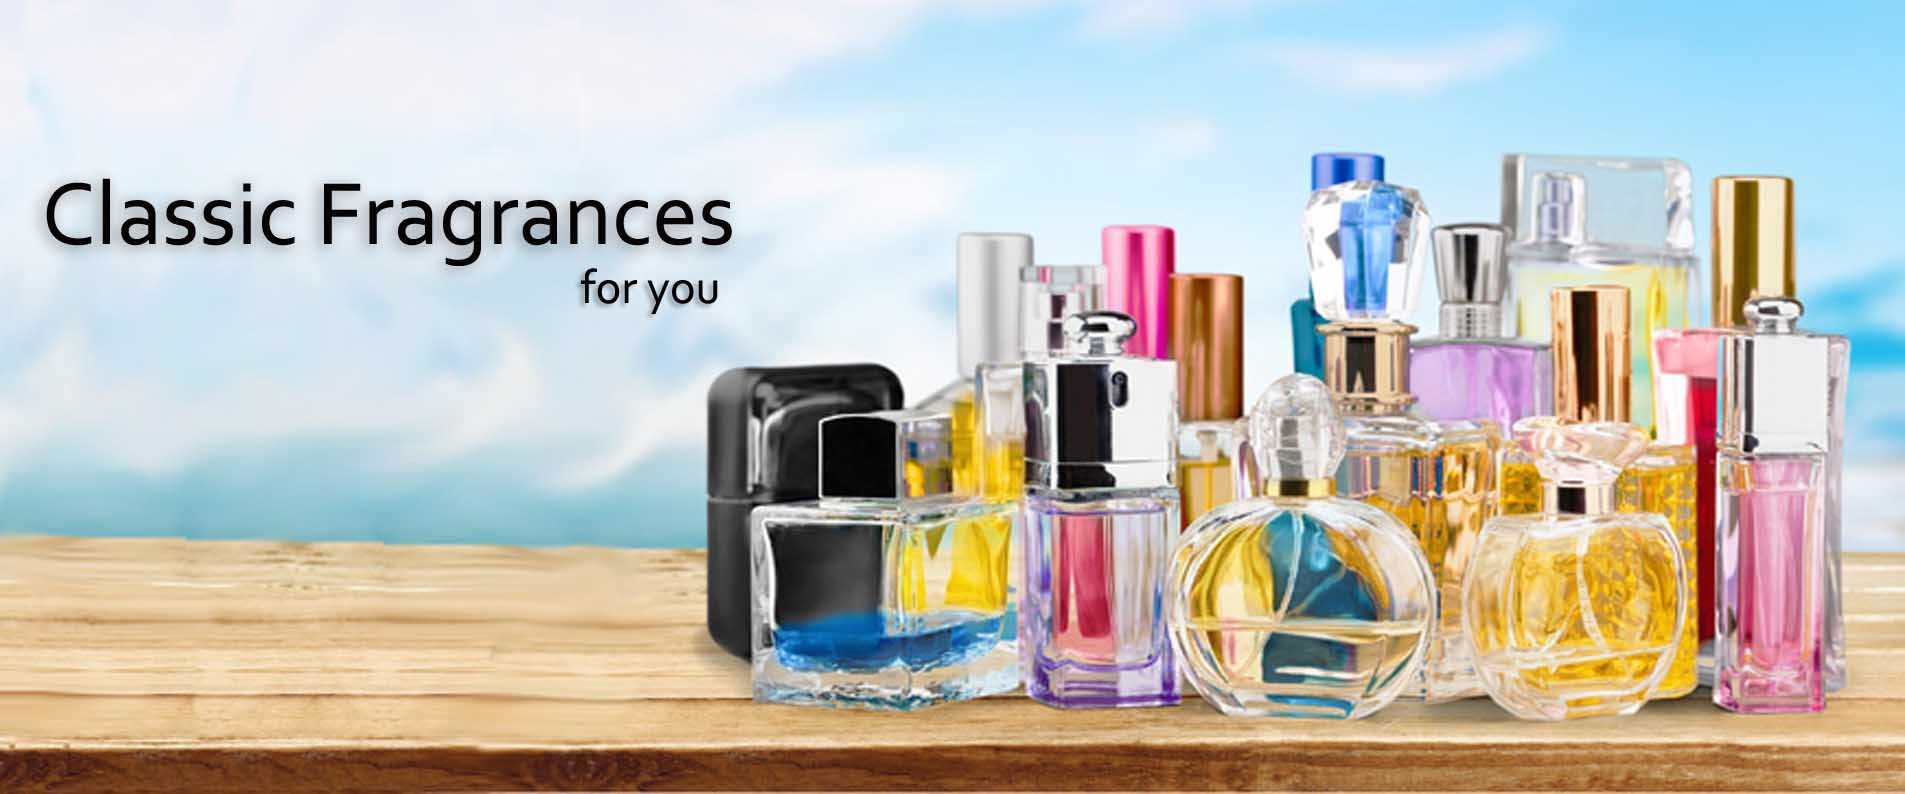 beauty and health products online - Buy Beauty and Health Products Online Malaysia free shipping ...